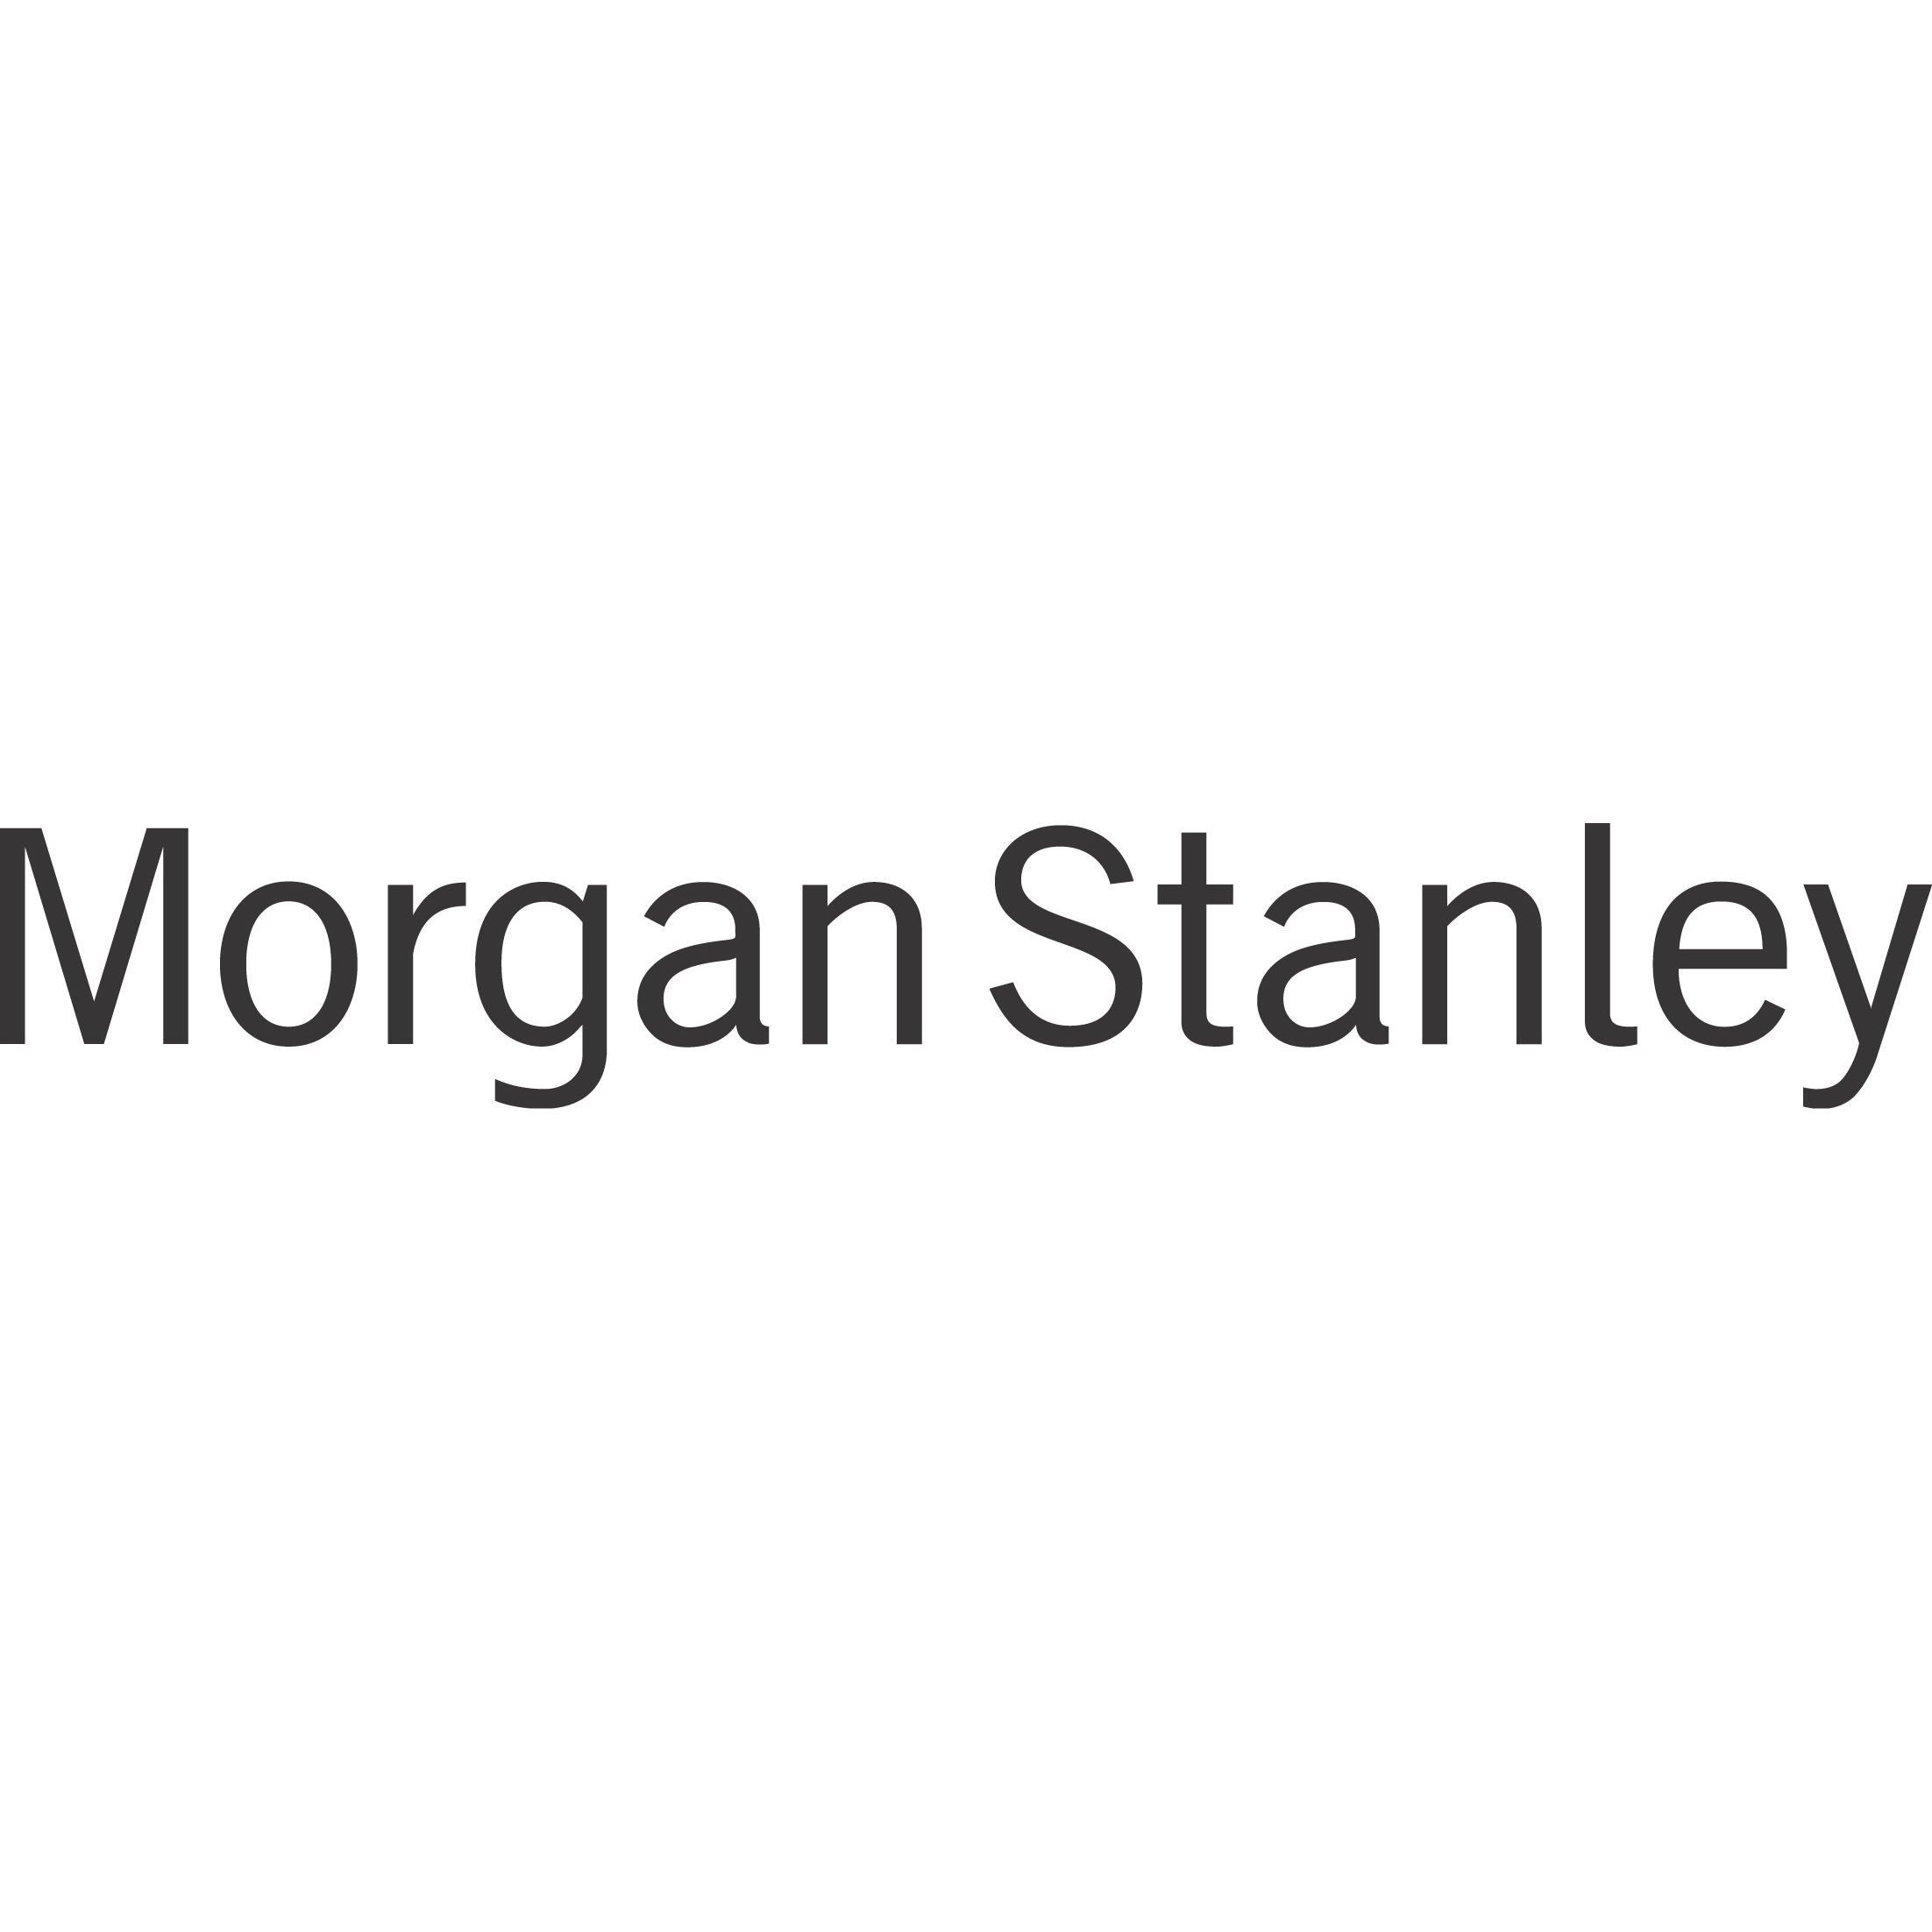 Paul J Halvorson - Morgan Stanley | Financial Advisor in Charleston,South Carolina